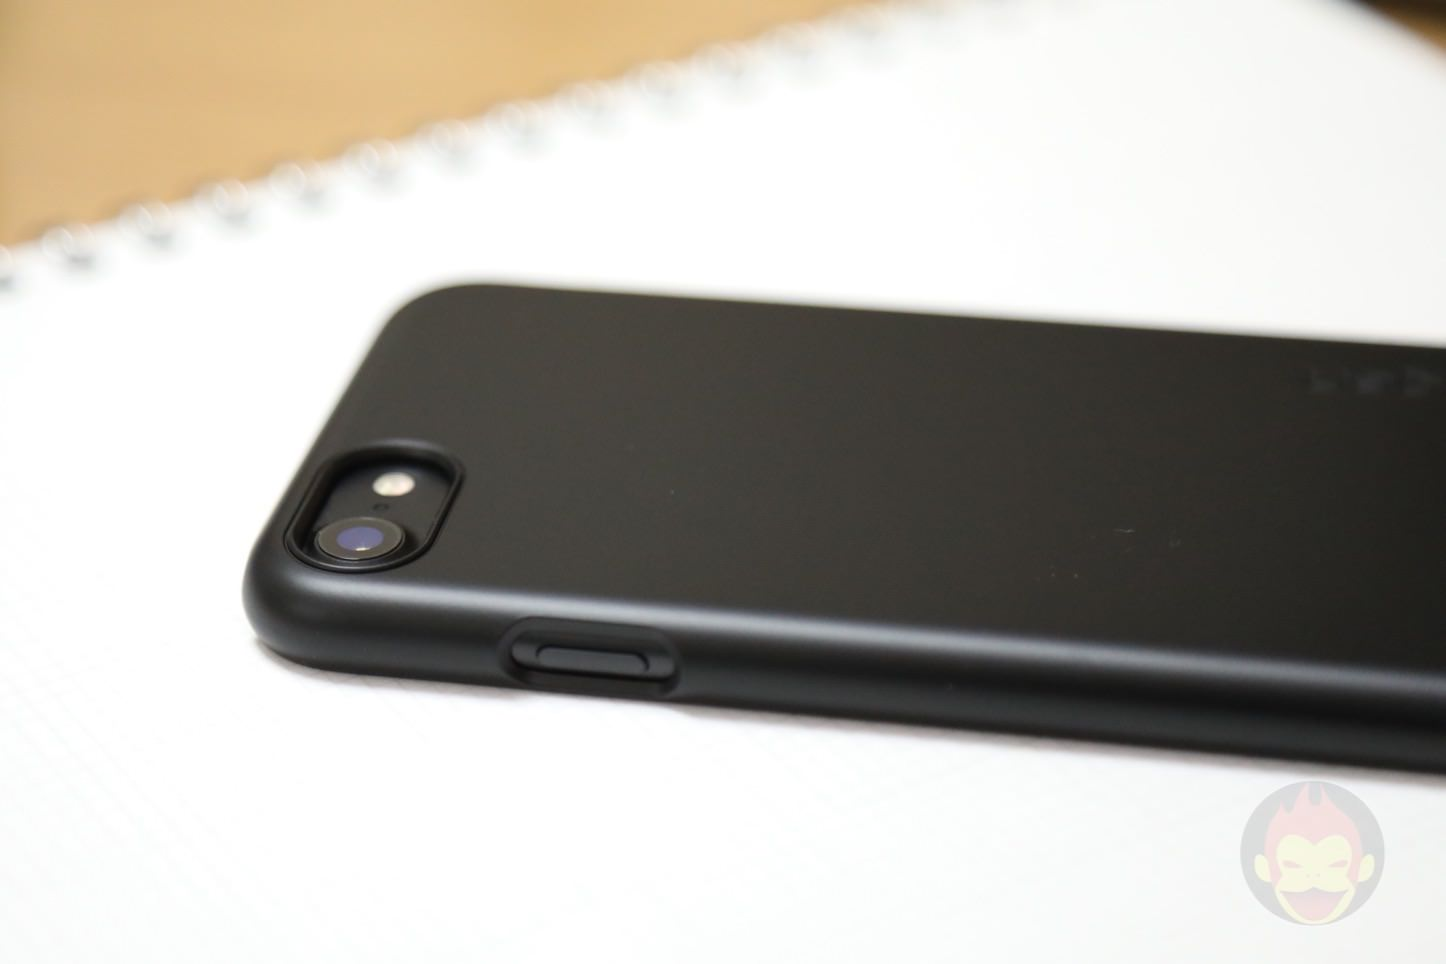 iPhone-7-Thin-Fit-Case-05.jpg